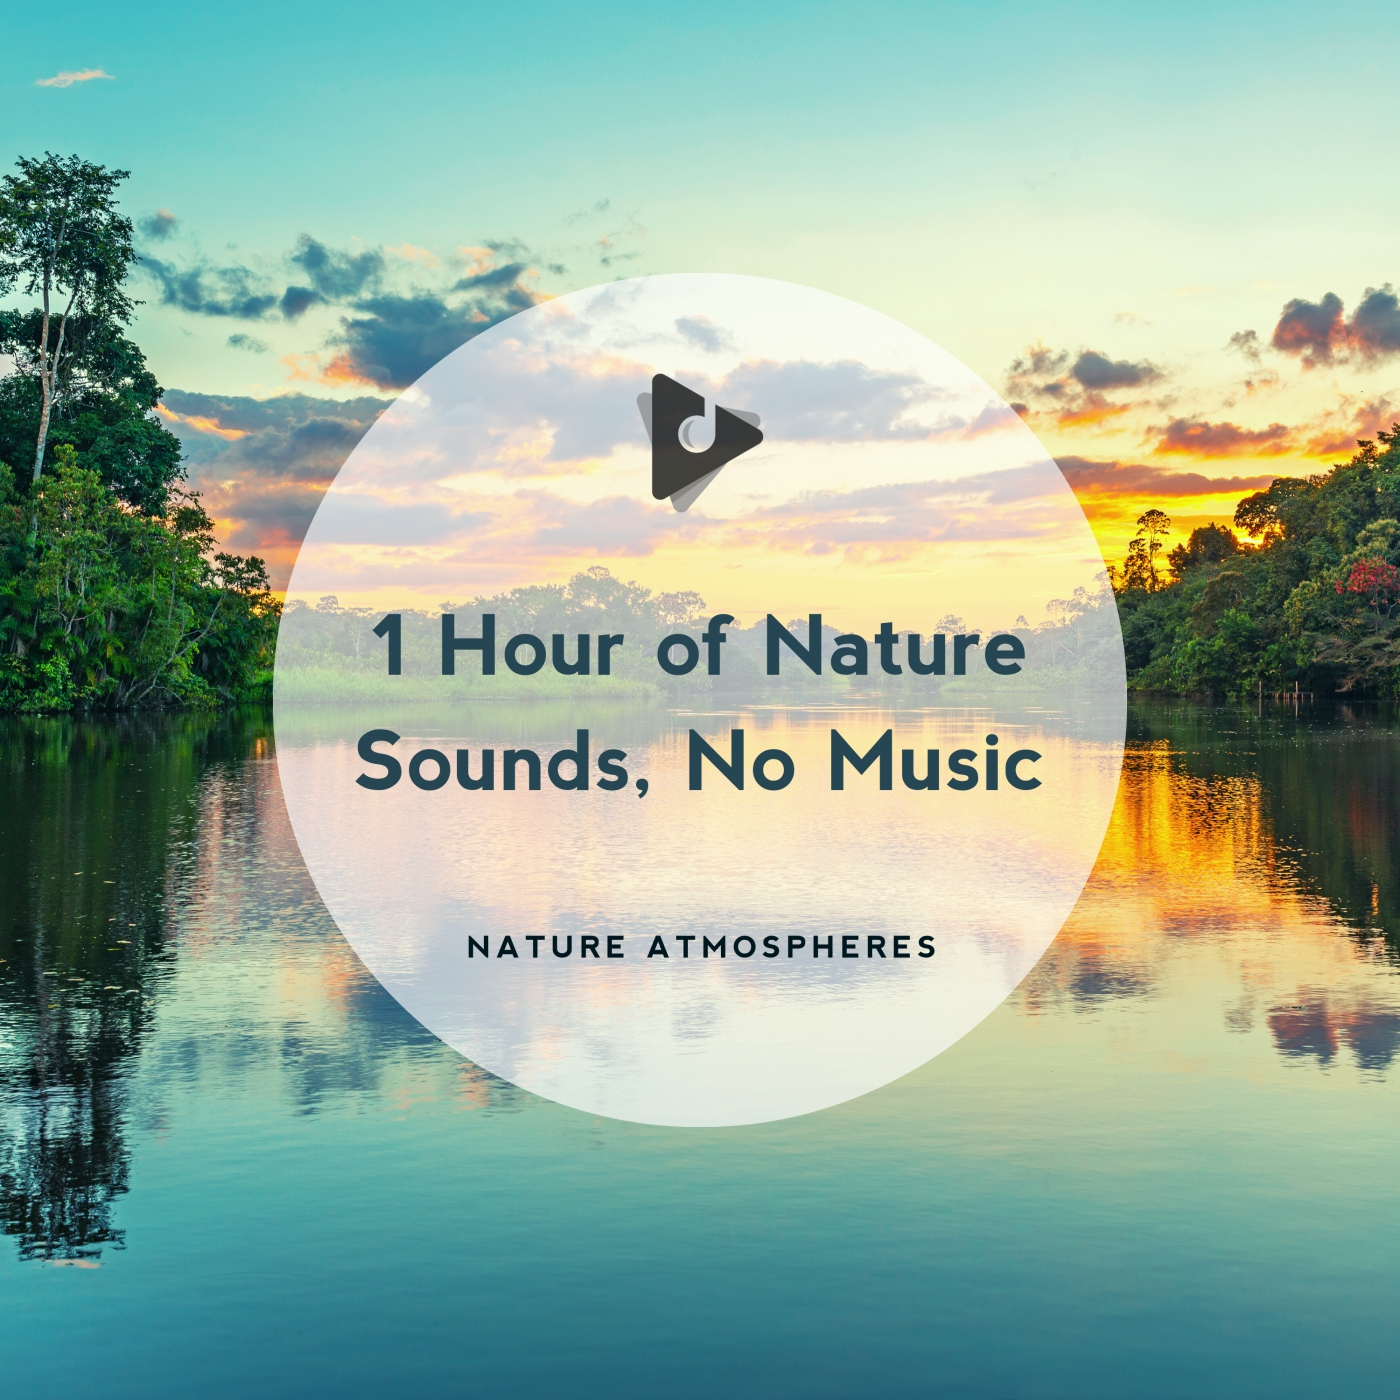 1 Hour of Nature Sounds, No Music